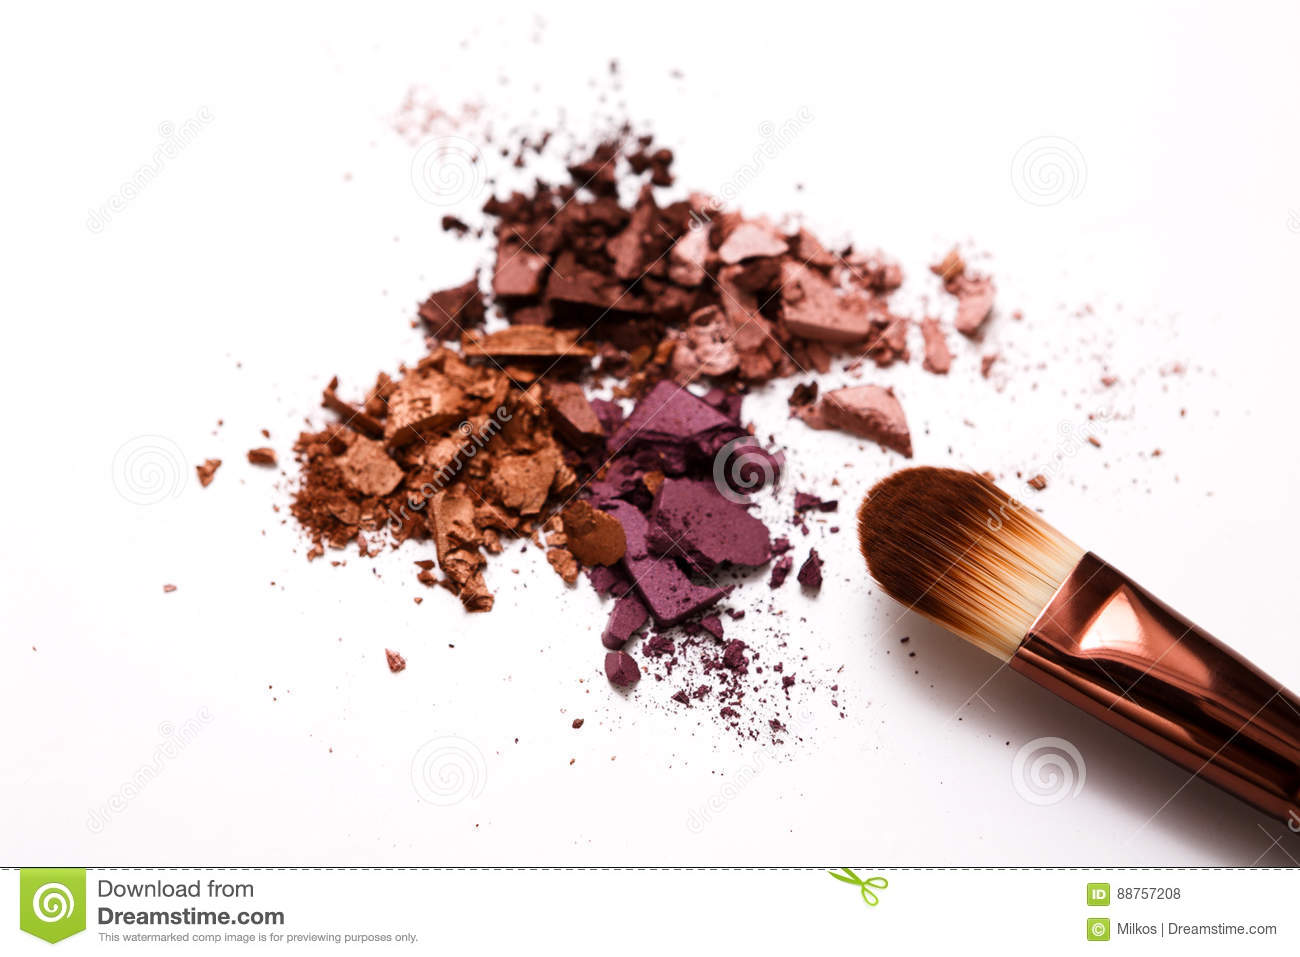 Makeup Brushes With Blush Or Eyeshadow Of Pink, Red And